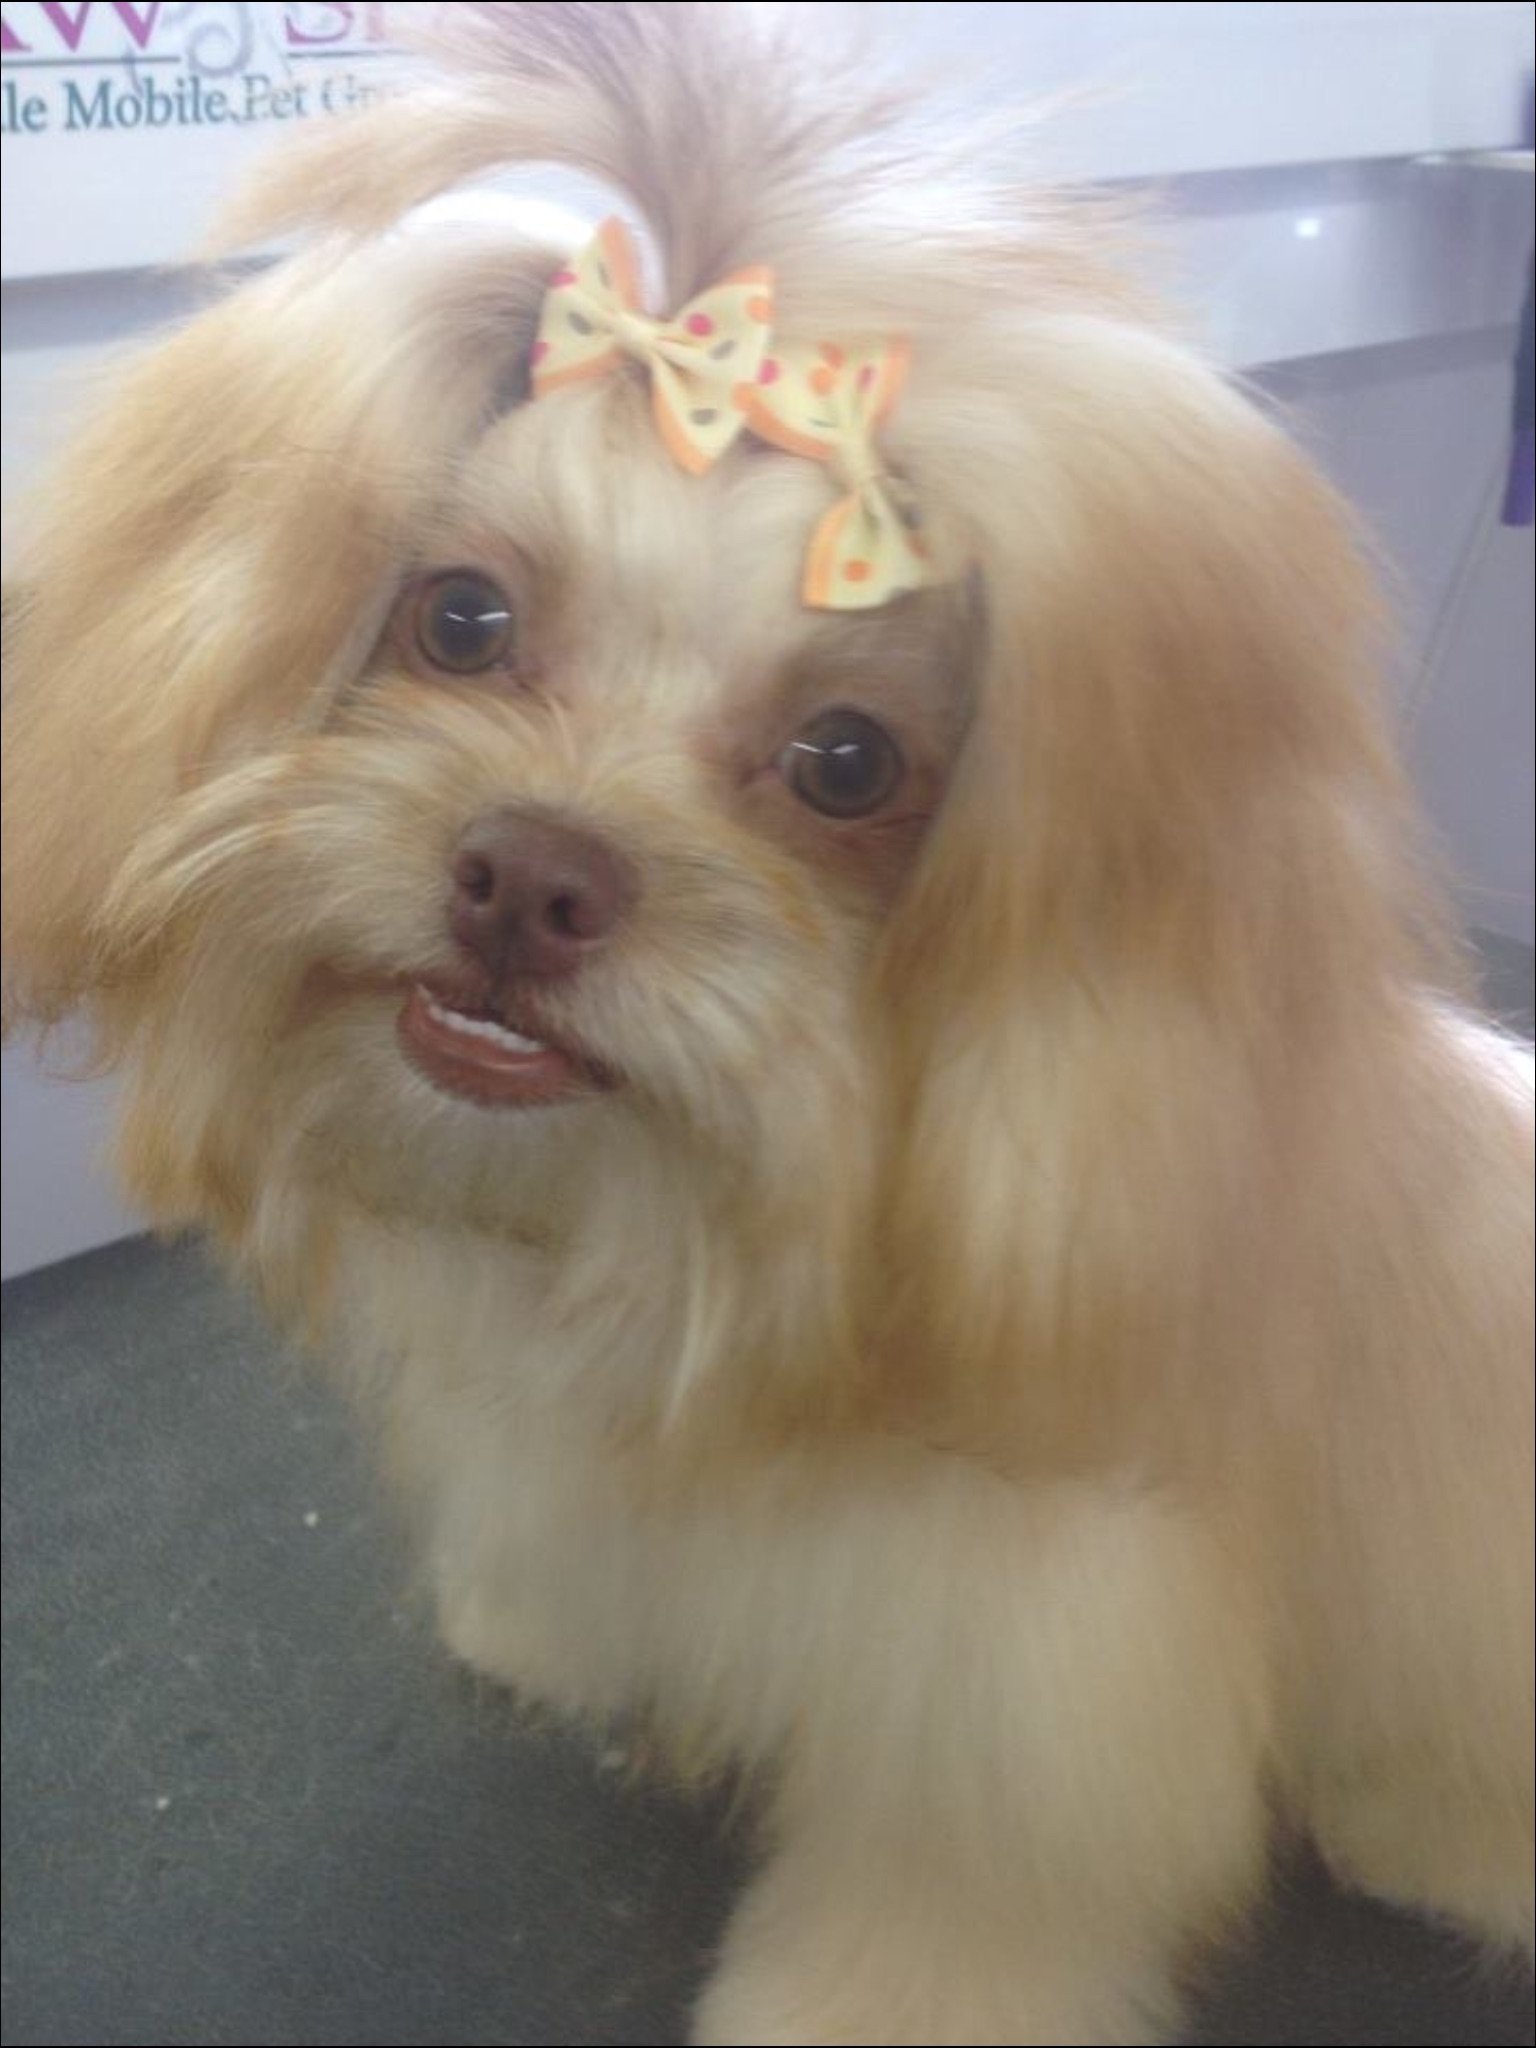 Le Paw Spa Mobile Pet Grooming image 13